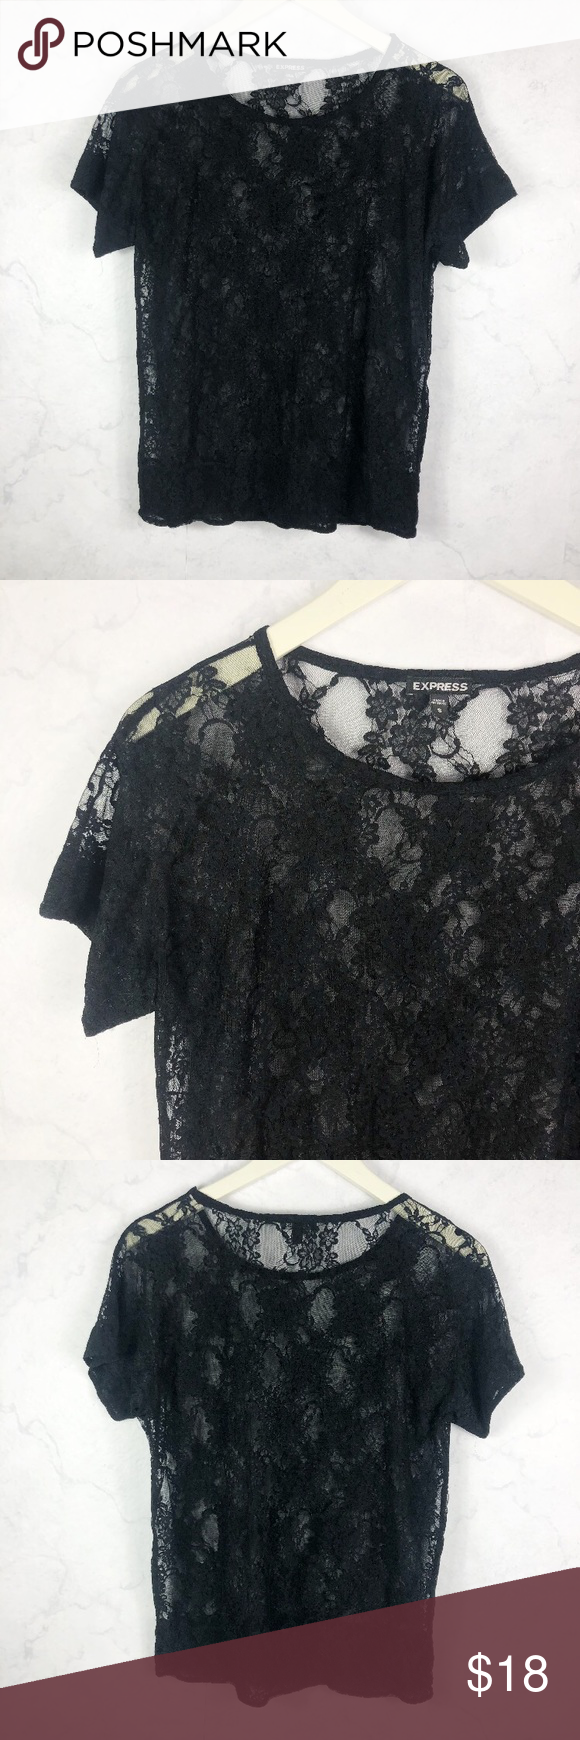 [Express] Sheer Lace Top Express Sheer Lace Mesh Shirt. Floral Lace Design. Short Sleeve. Cute & Comfy. Lightweight. No Stains or Rips.  (0326) Express Tops Tees - Short Sleeve